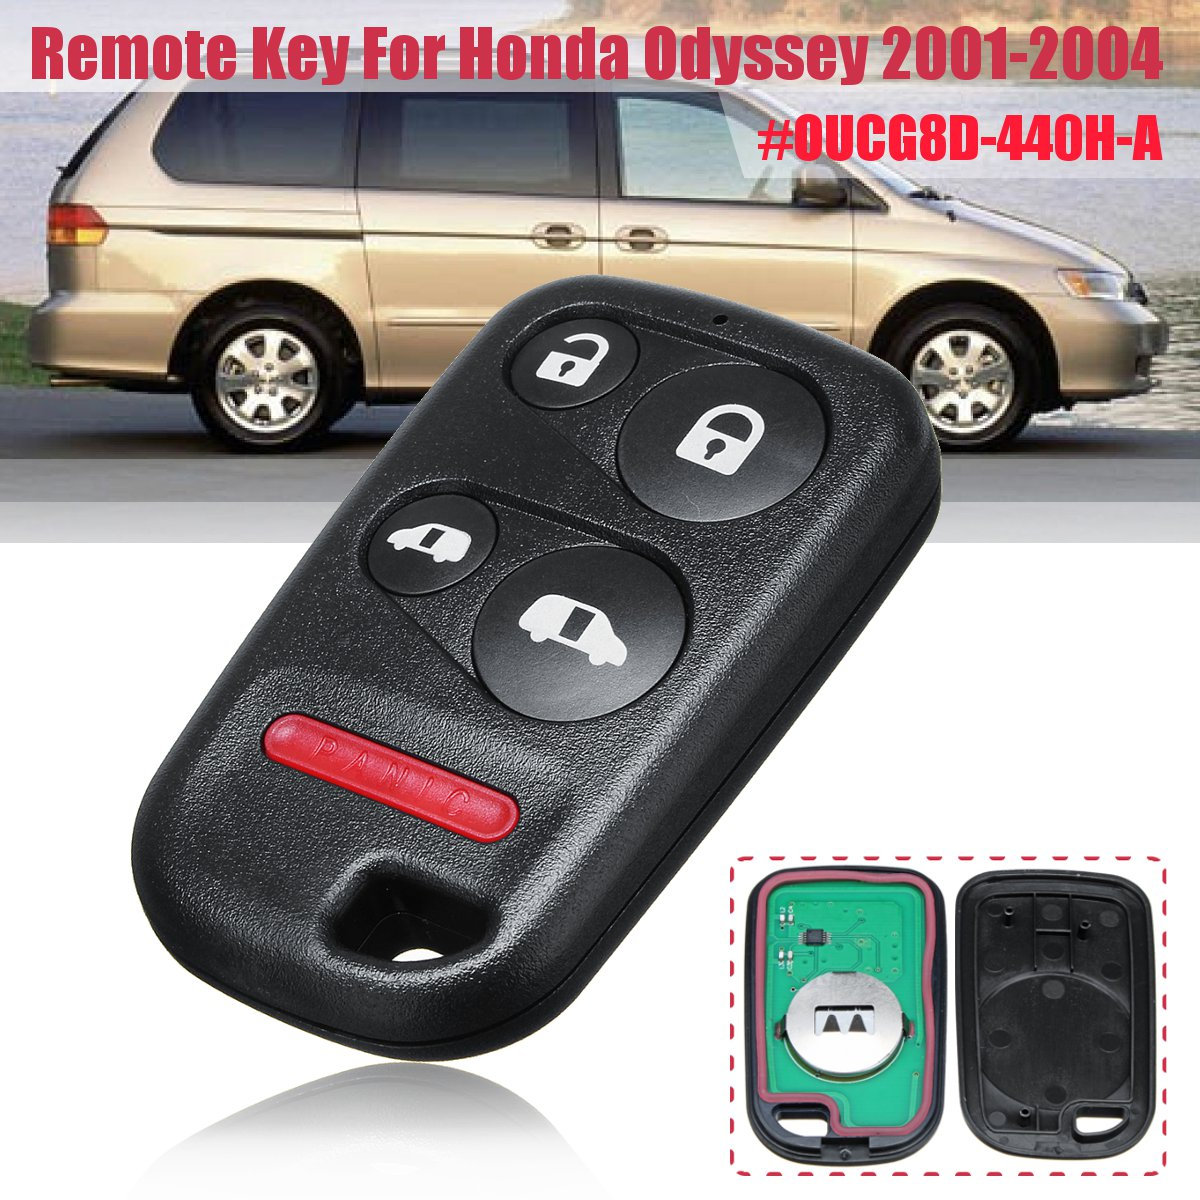 Replacement Remote Key Fob 5 Button for Honda Odyssey 2001-2004 OUCG8D-440H-A